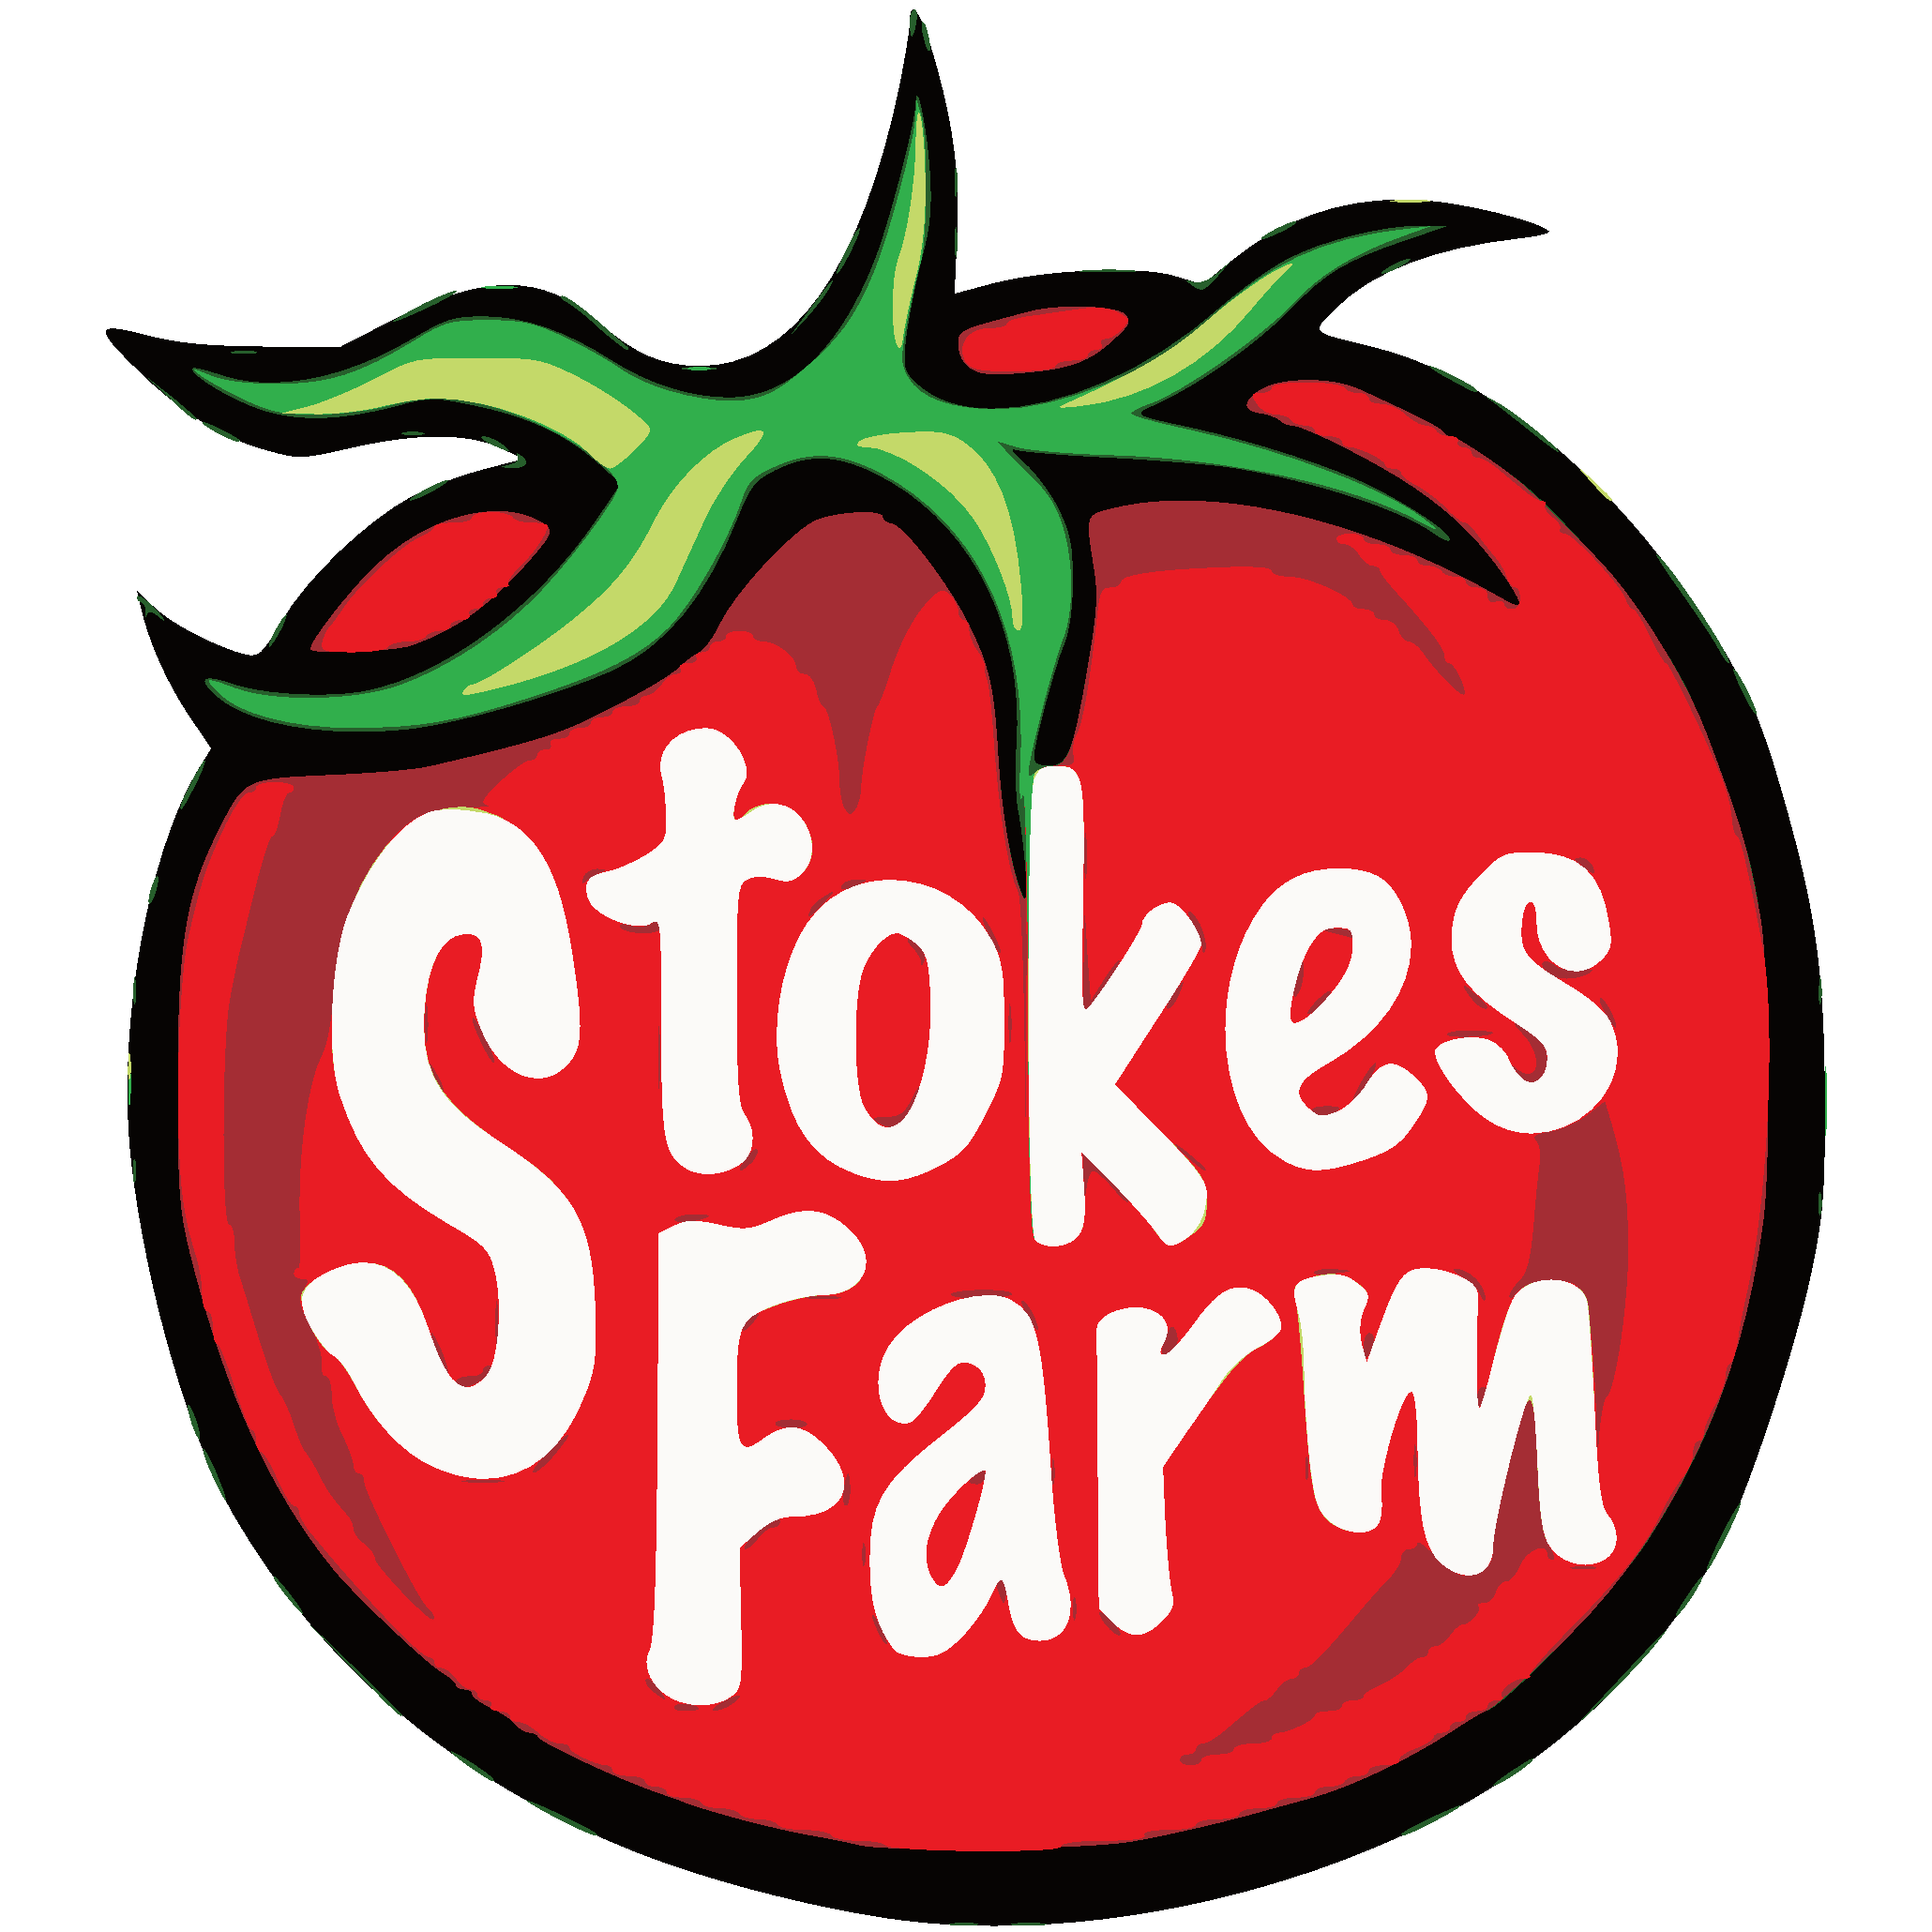 logo_stokes.png